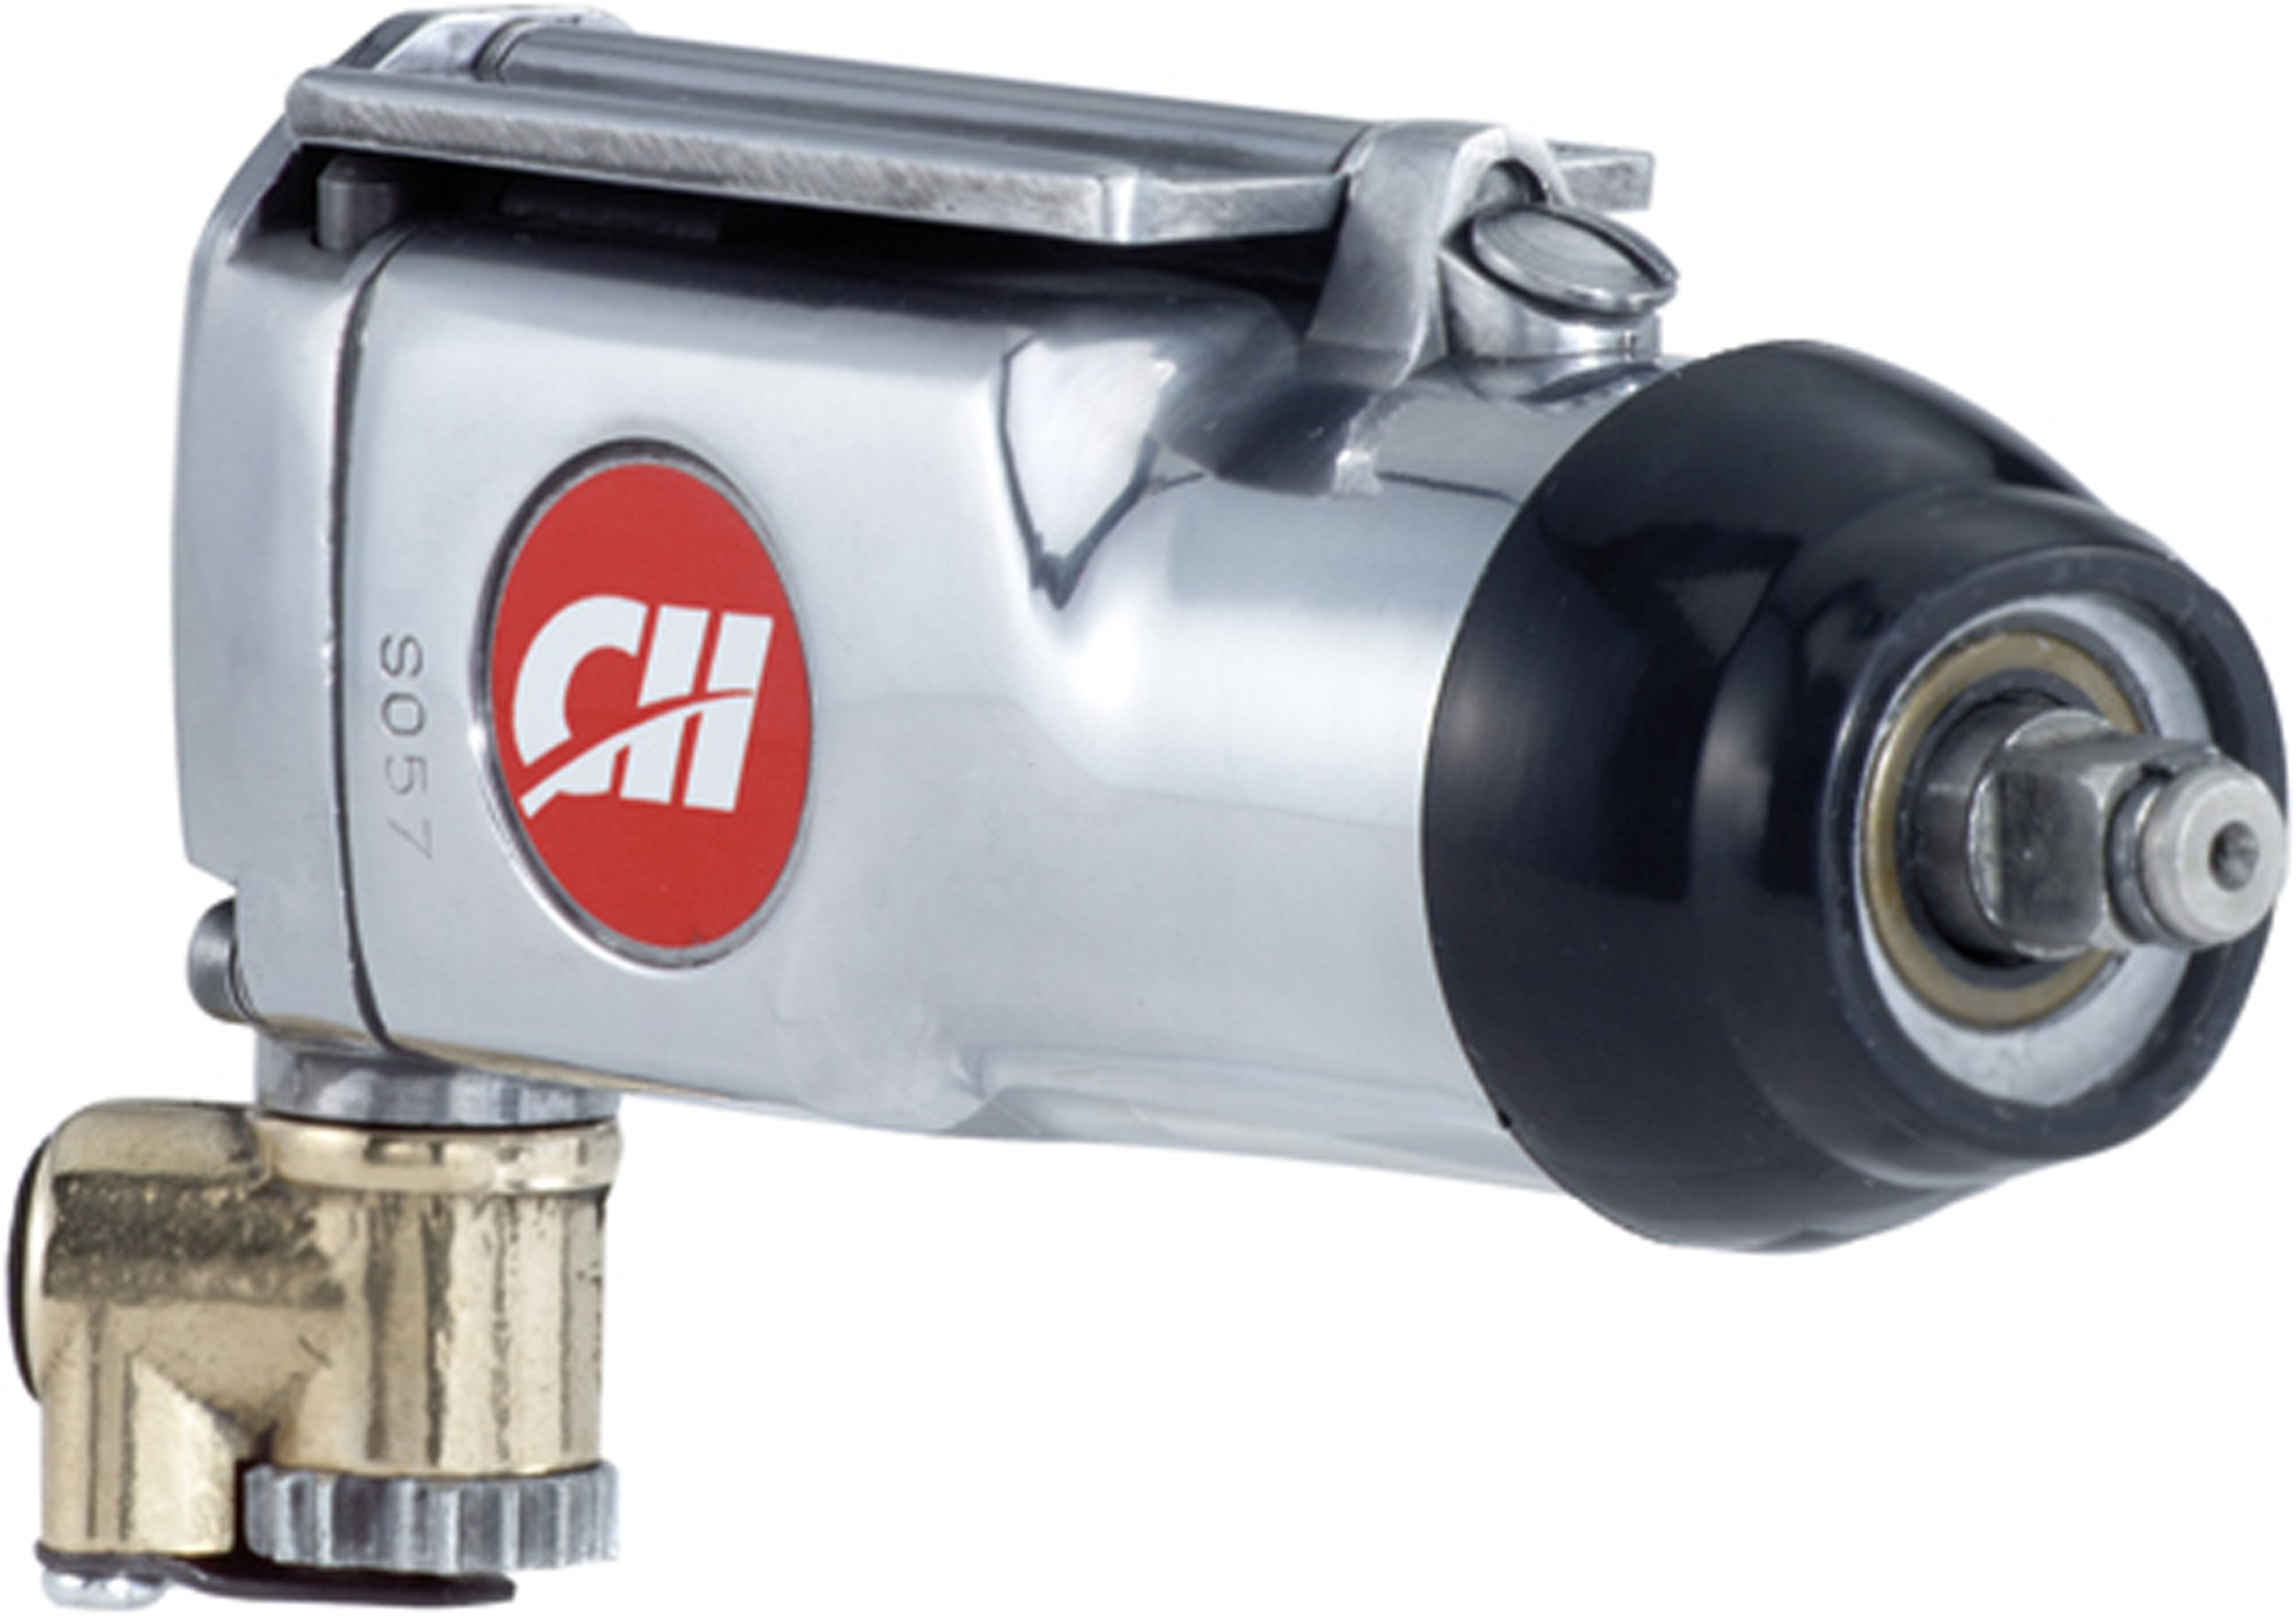 Campbell Hausfeld TL1017 3/8-Inch Butterfly Impact Wrench by Campbell Hausfeld